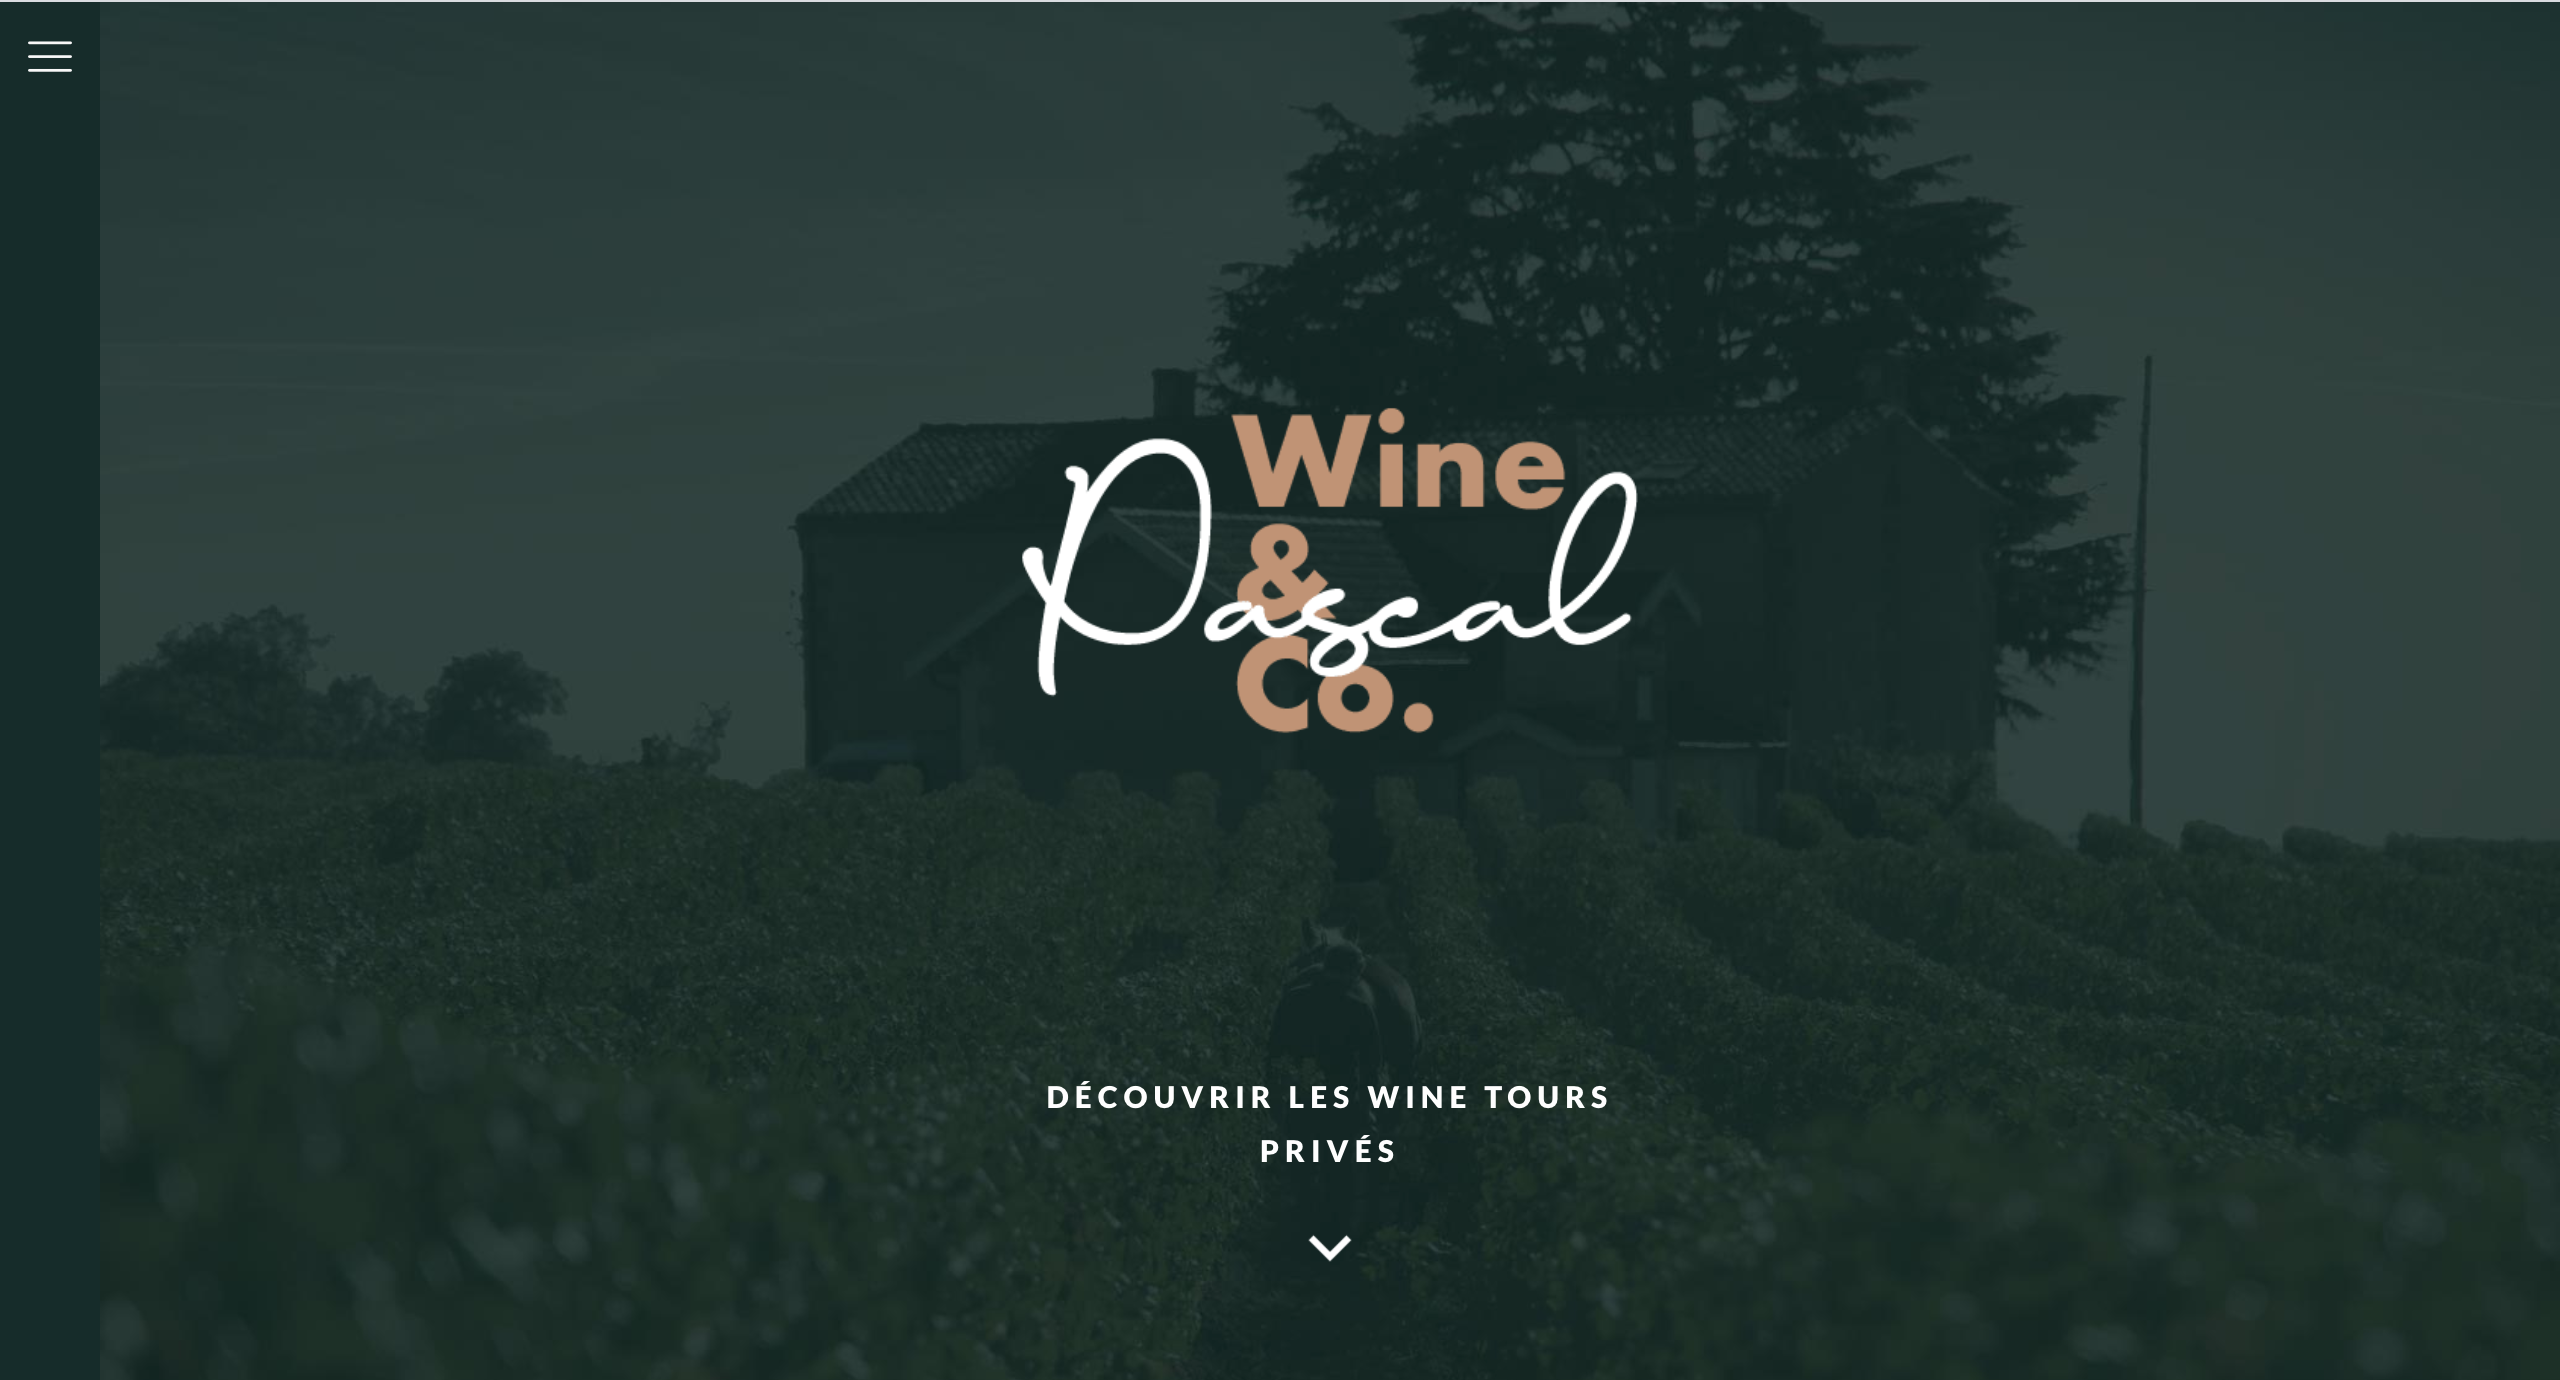 pascal-wine-co-project